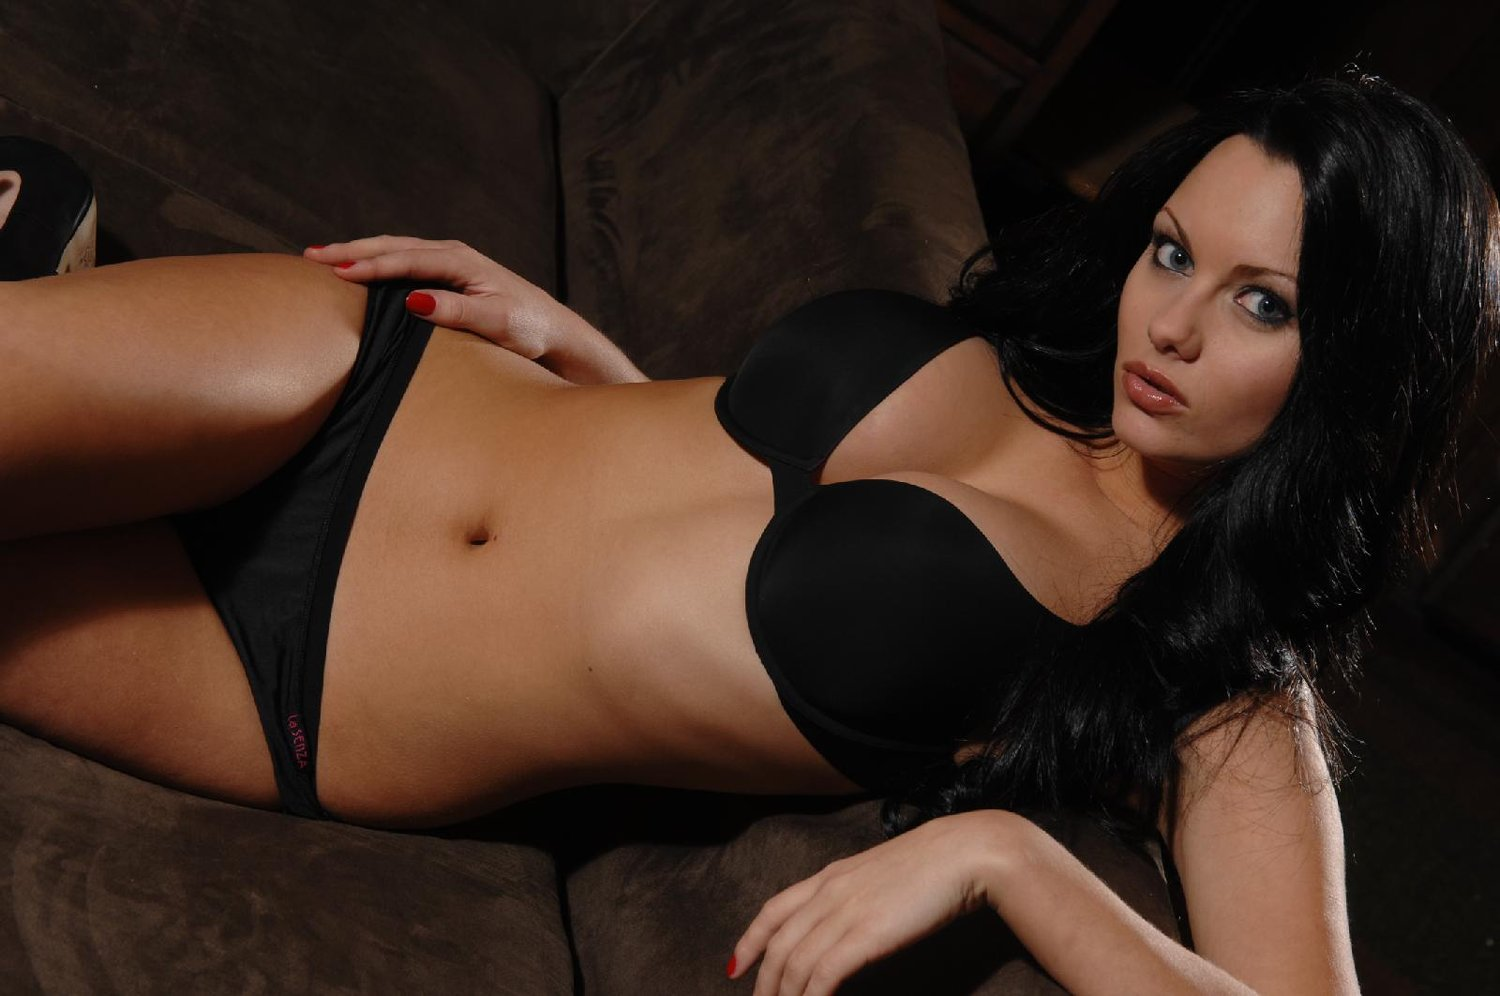 Jessica jane clement pic compilation 1